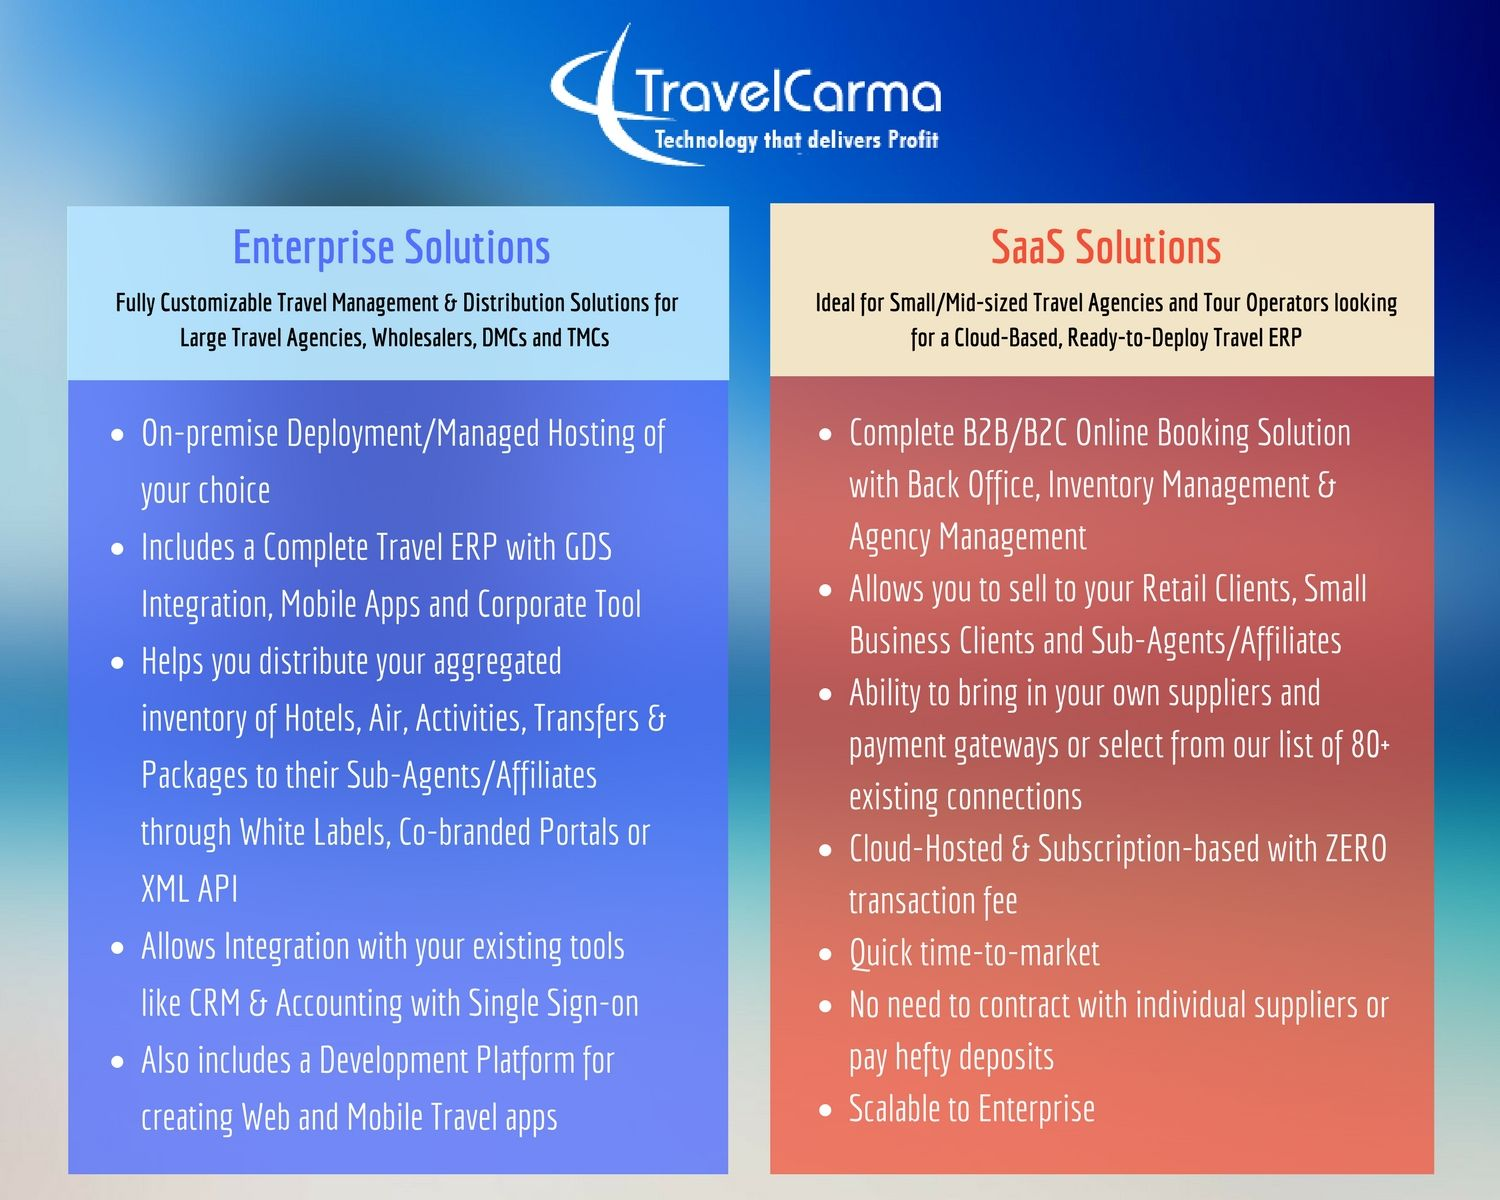 TravelCarma provides a powerful suite of Travel Technology Solutions